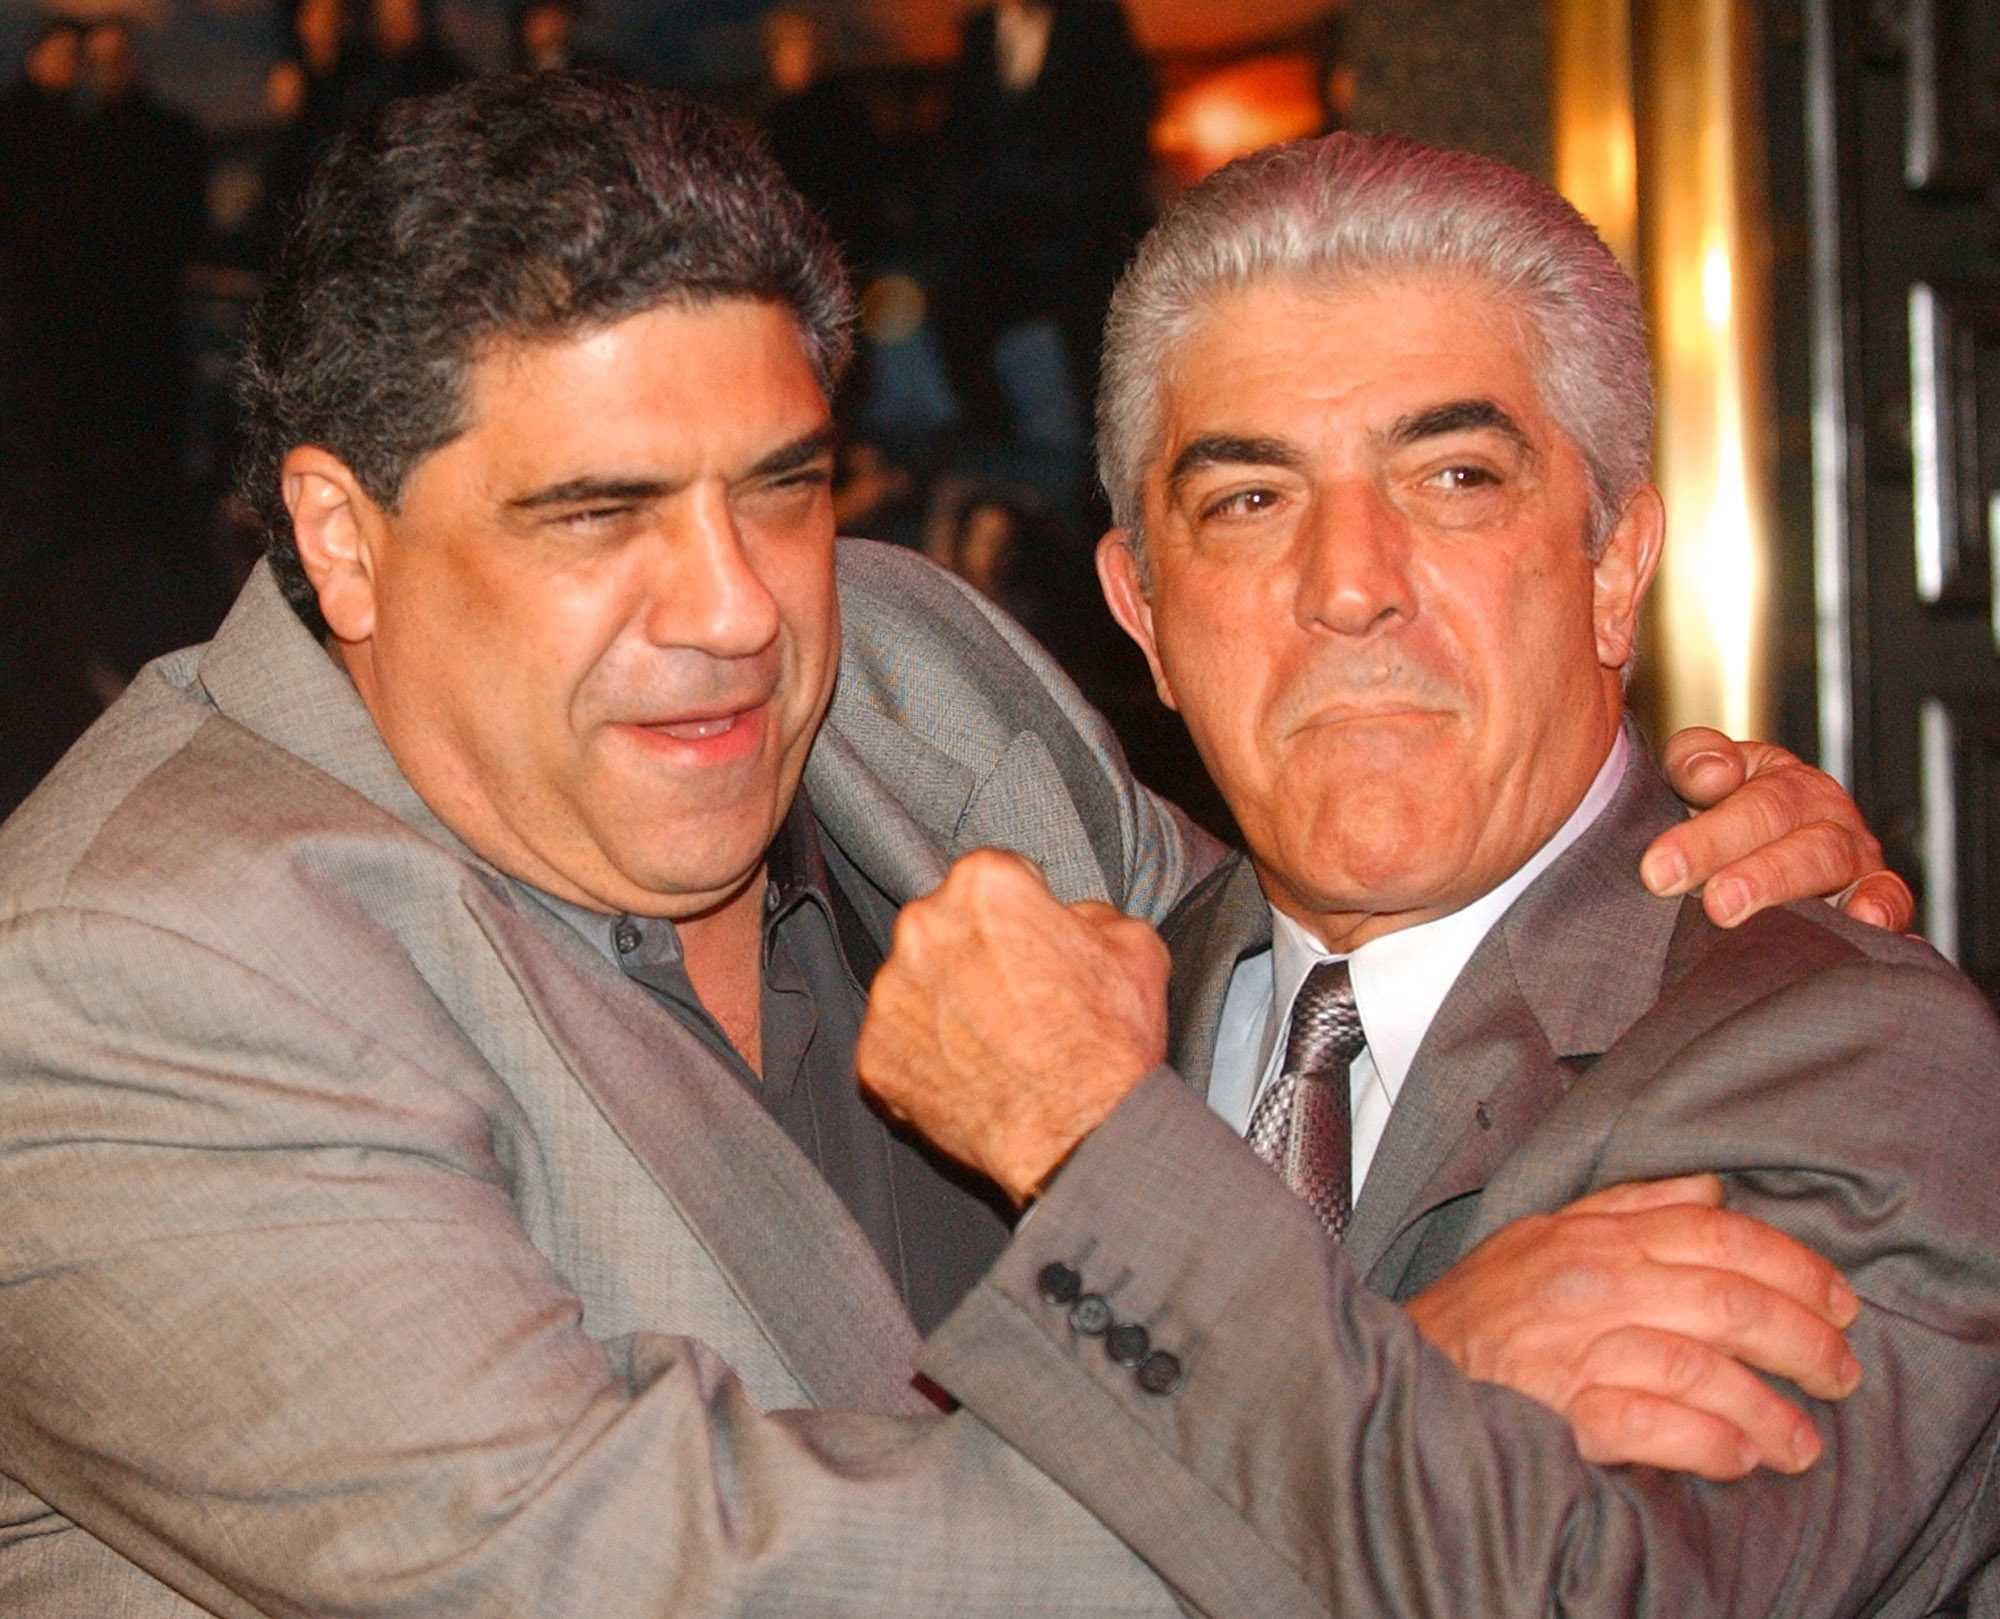 'Goodfellas' and 'The Sopranos' star Frank Vincent has died at 78